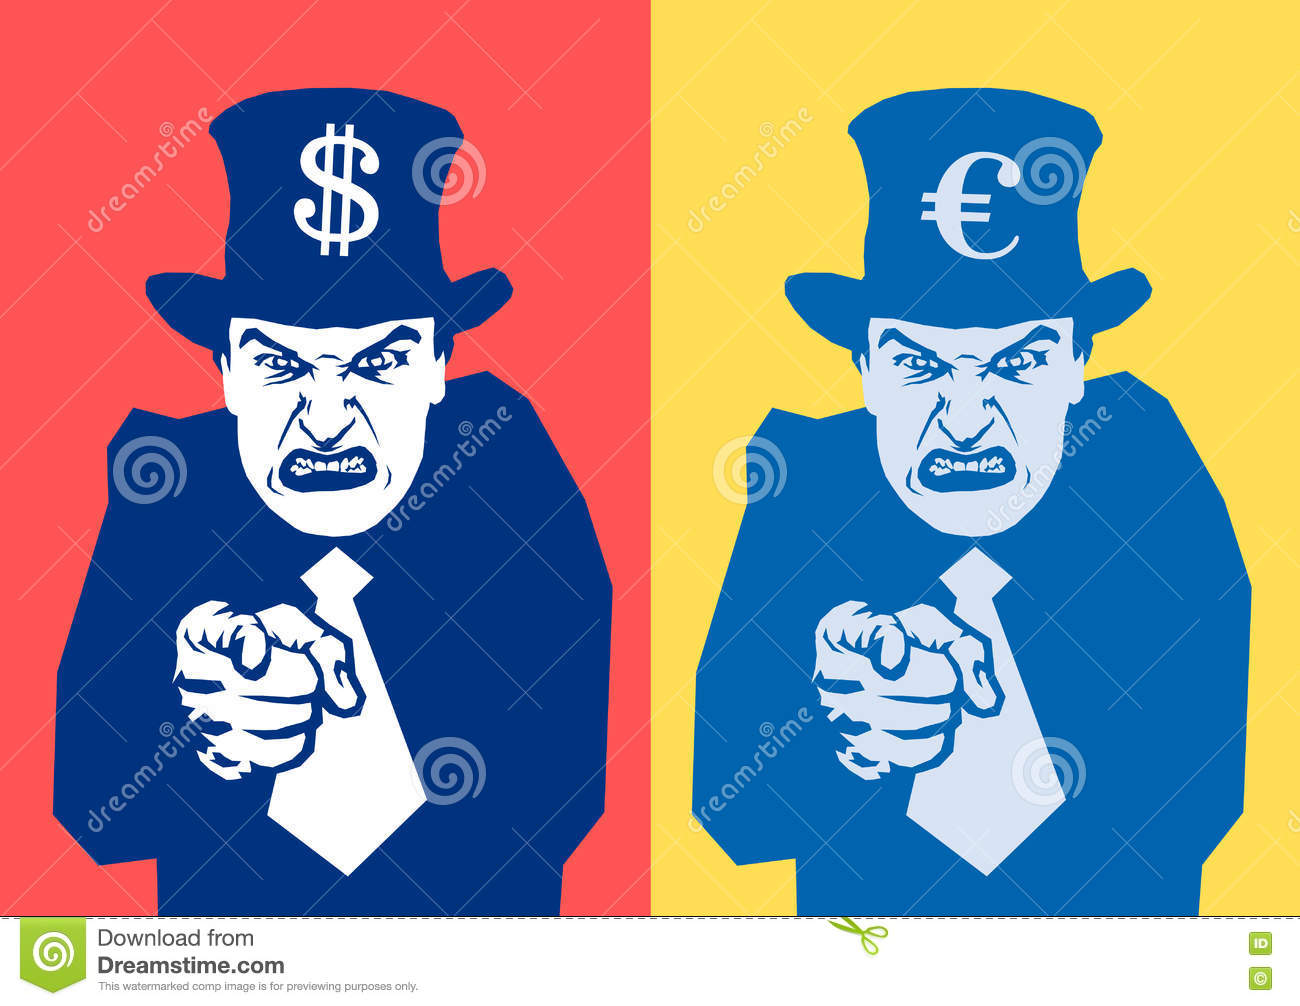 Financial oppression stock vector. Illustration of domination - 79750262